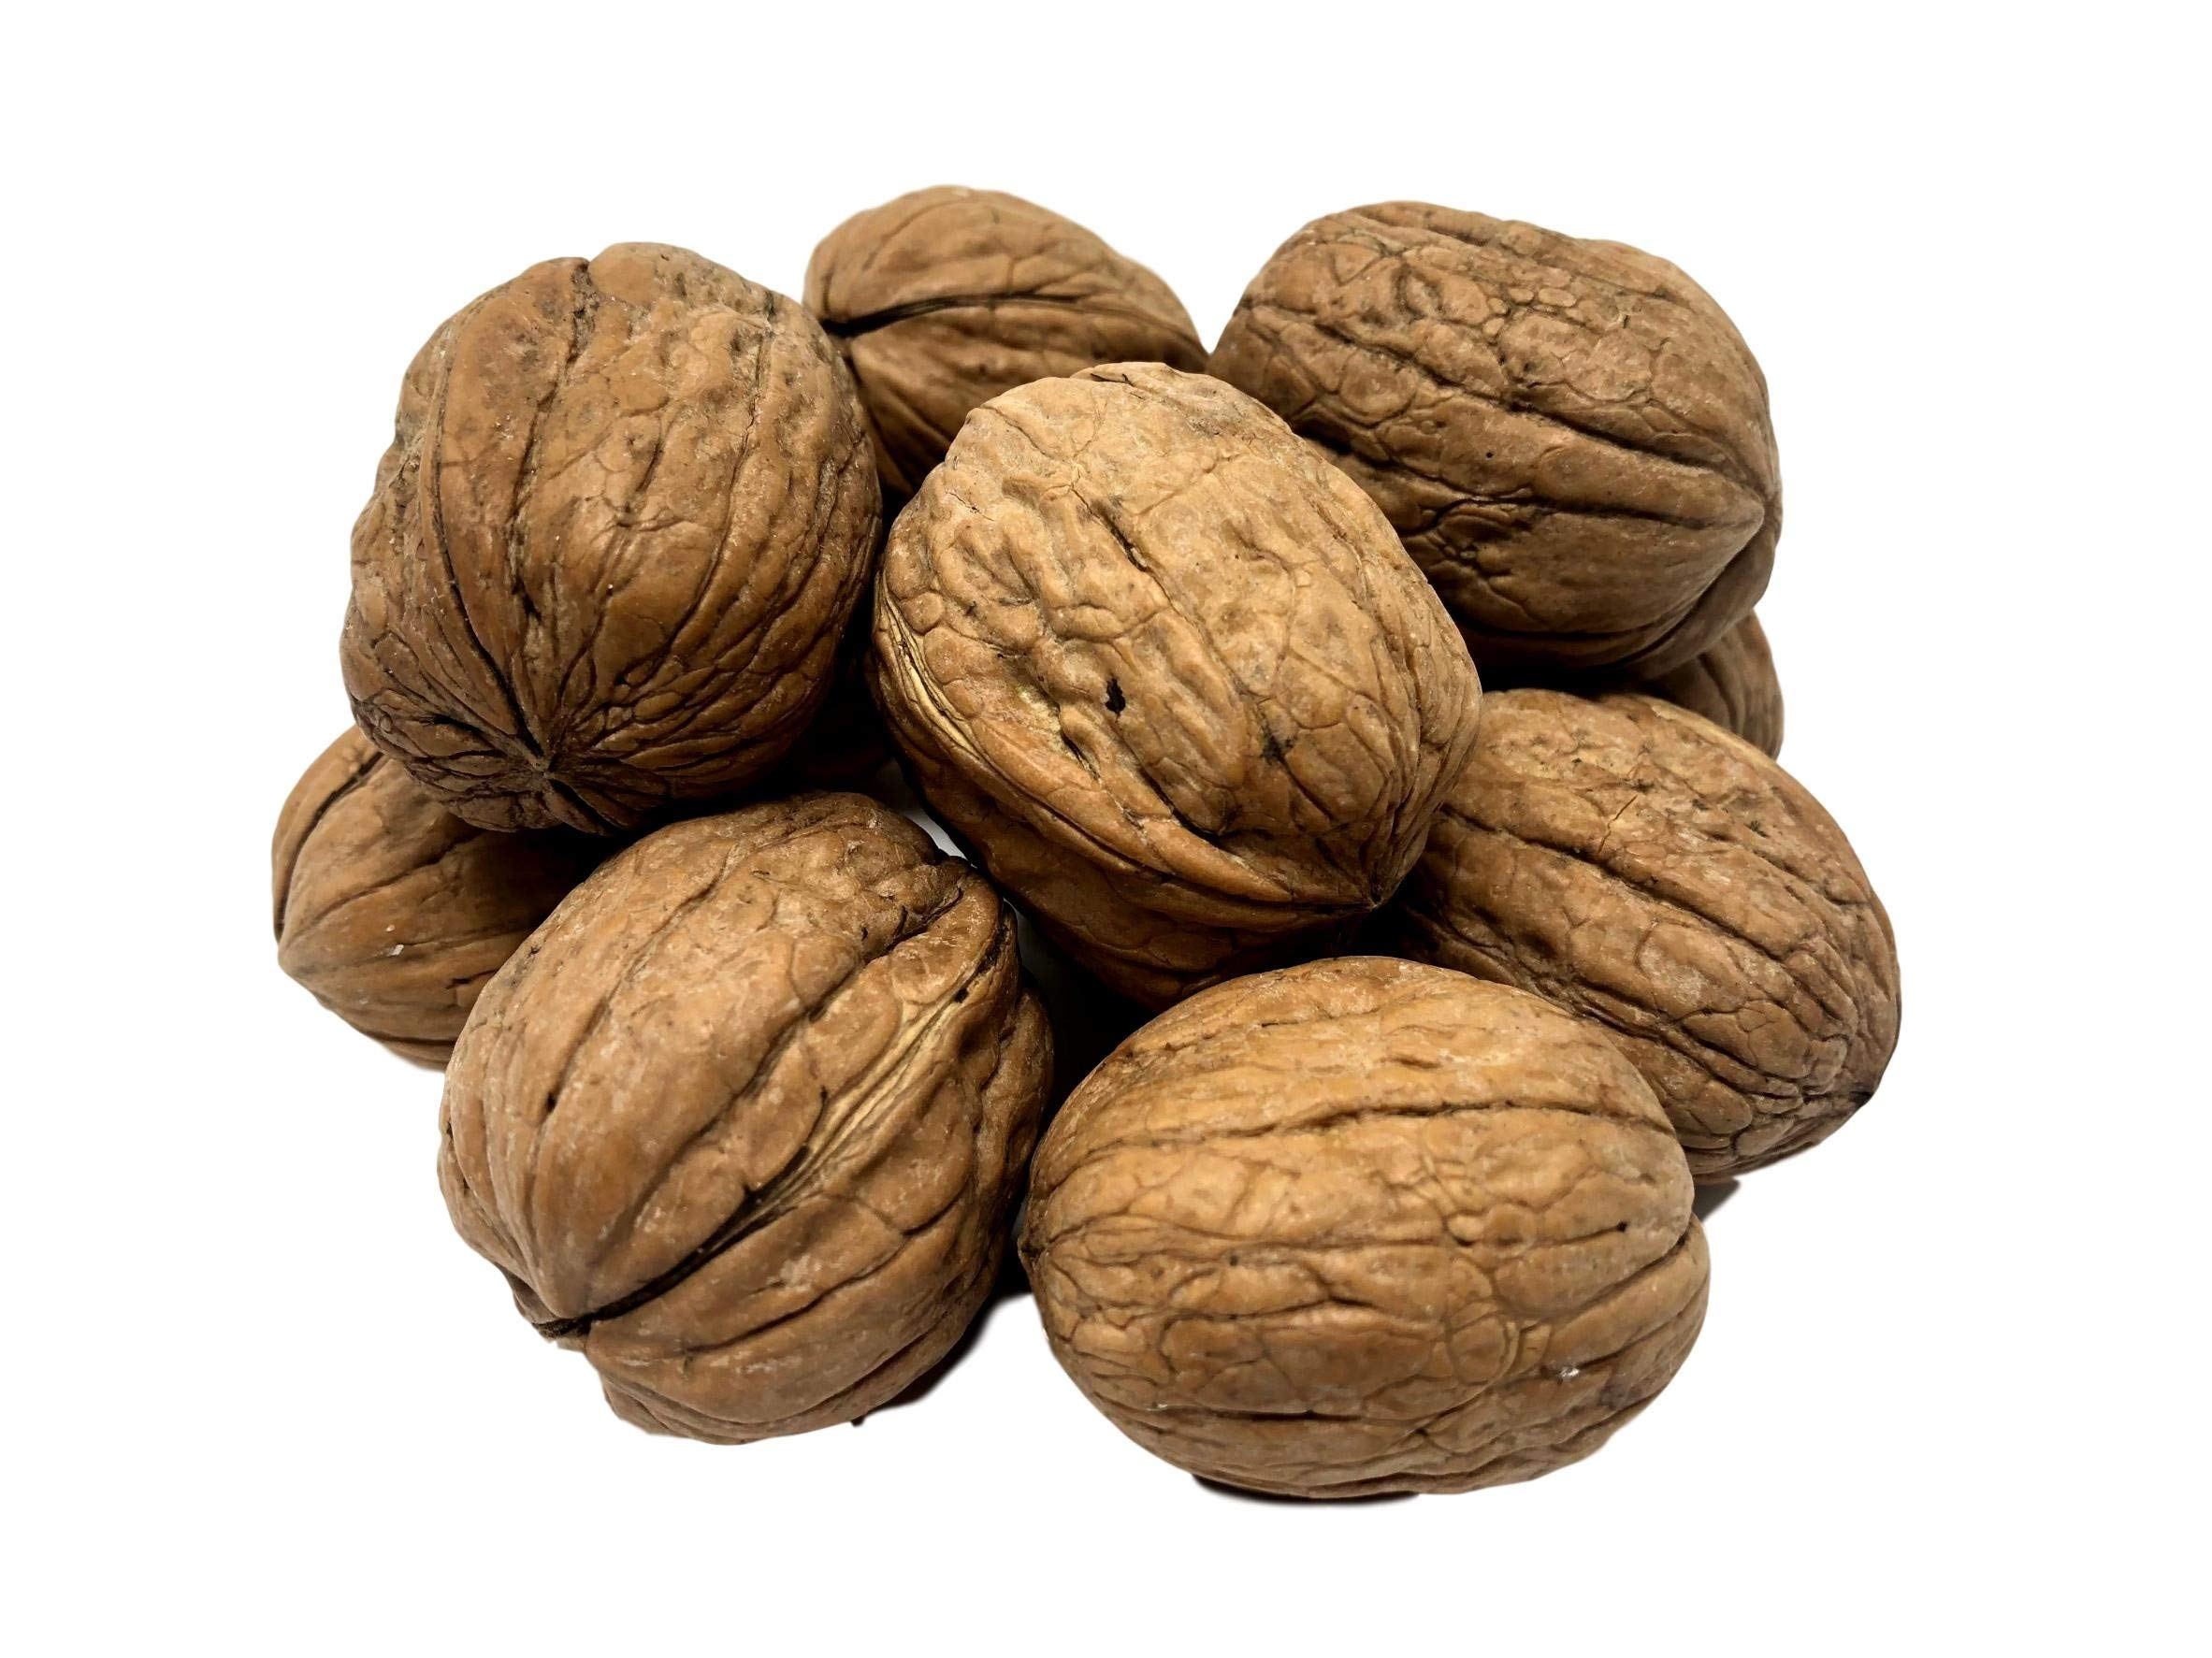 NUTS U.S. - Walnuts In Shell | Grown and Packed in California | Jumbo Size and Chandler Variety | Fresh Buttery Taste and Easy to Crack | Non-GMO and Raw Walnuts in Resealable Bags!!! (2 LBS) by NUTS - U.S. - HEALTH IN EVERY BITE !